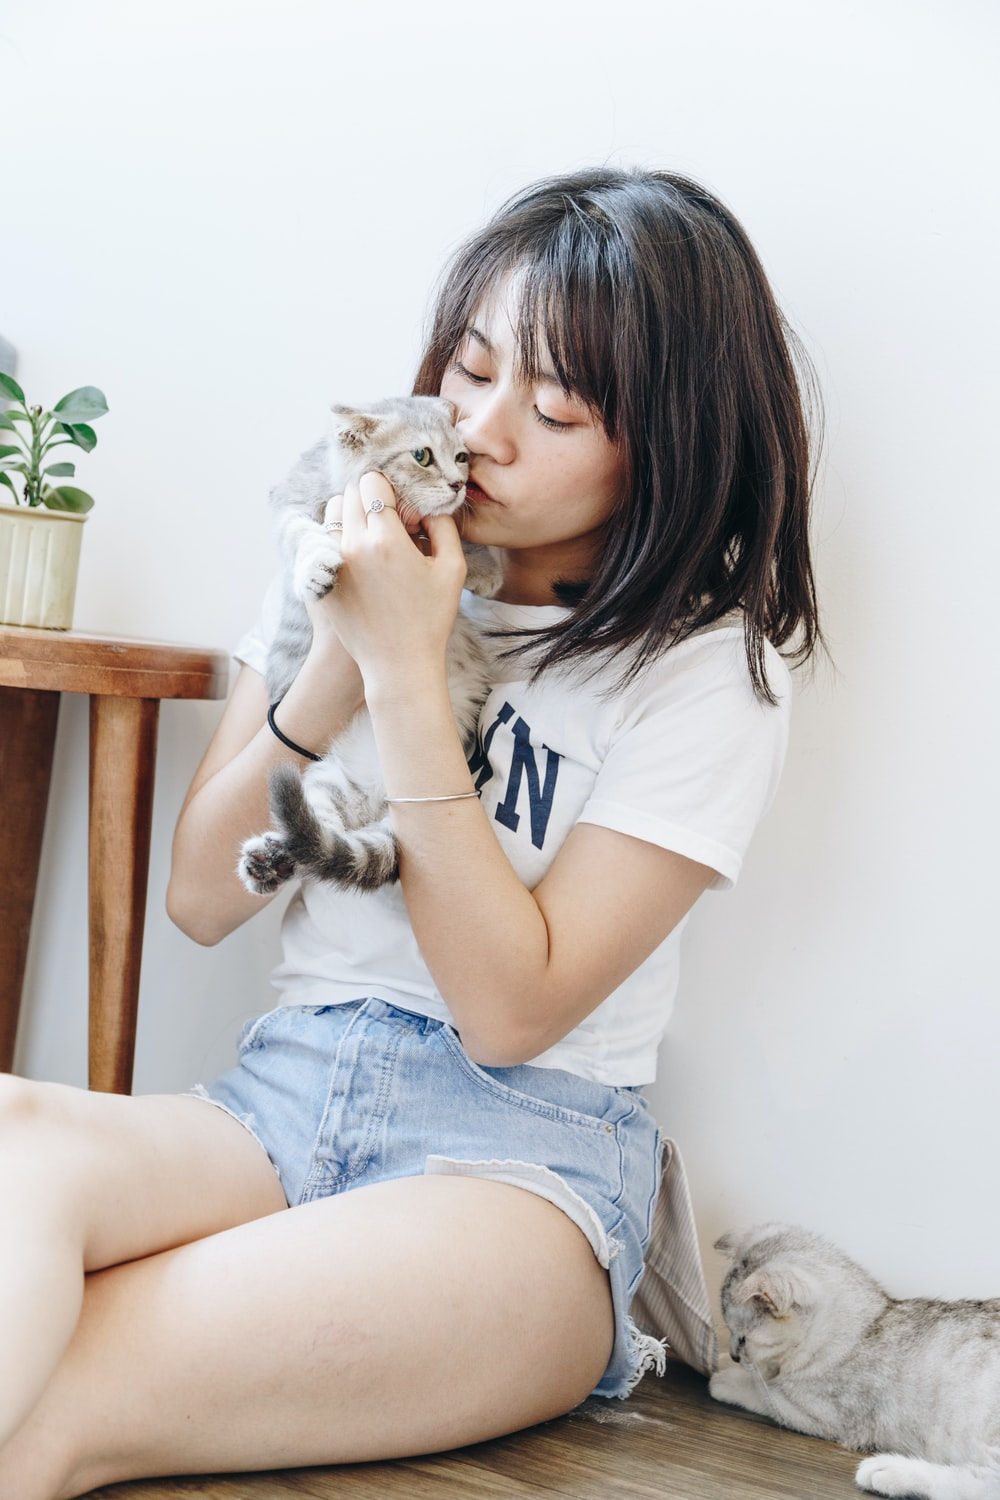 woman sitting and kissing kitten